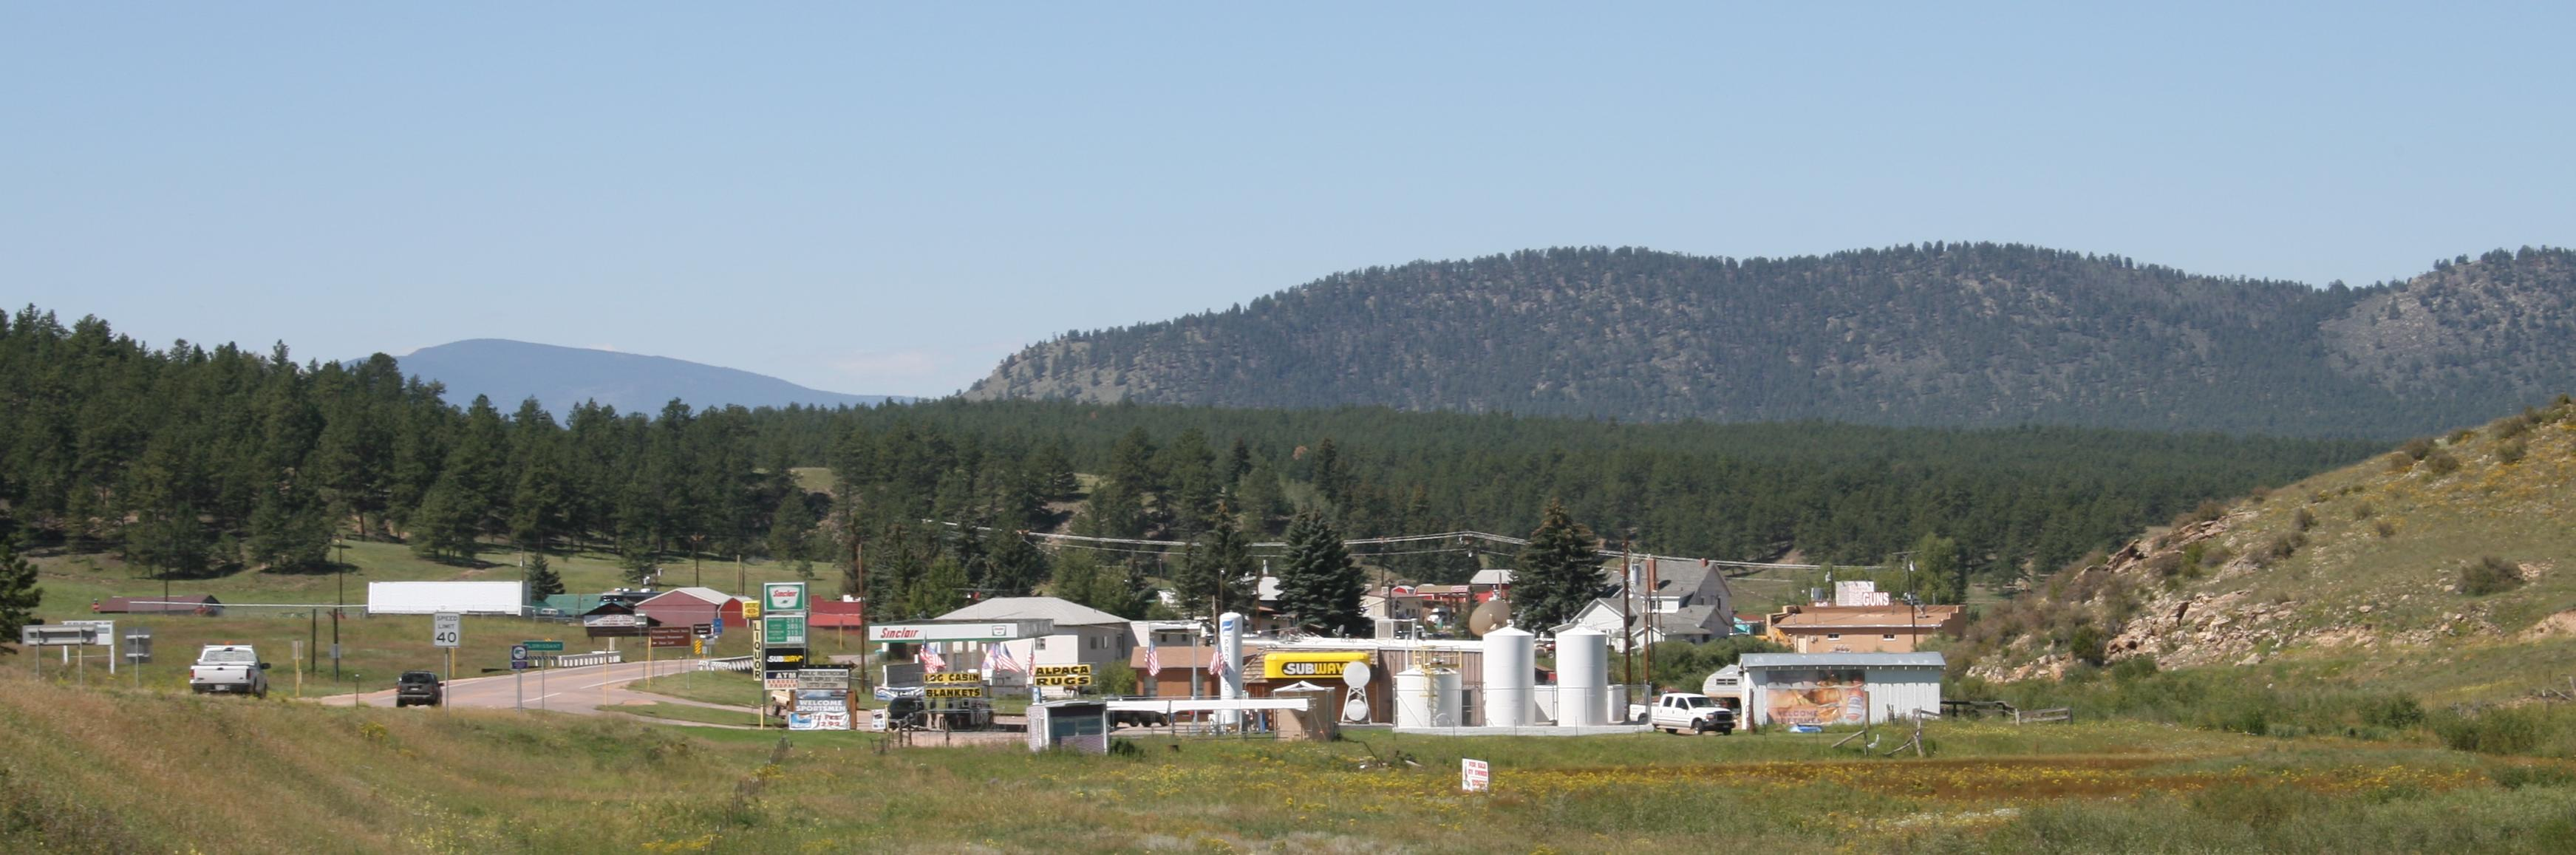 Woodland Park Photos - Featured Images of Woodland Park, CO Pictures of woodland park colorado